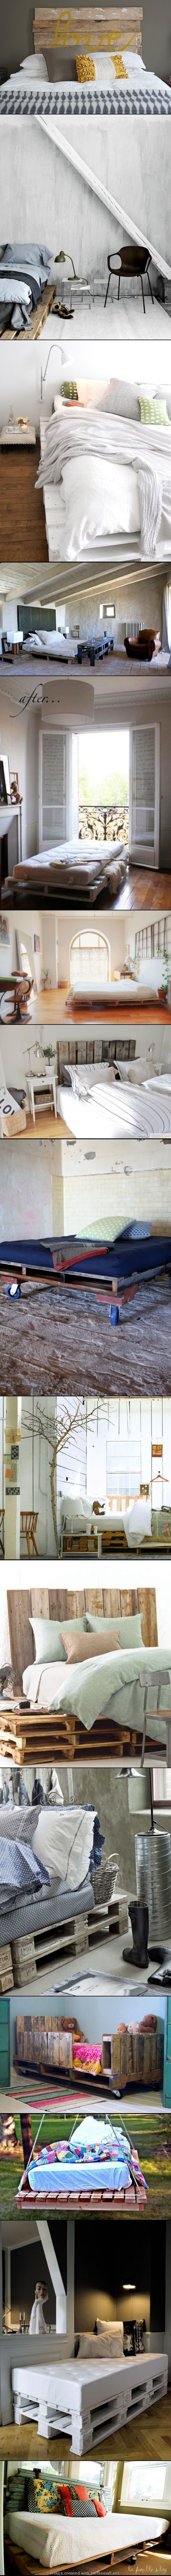 DIY DECOR AND CRAFTS: Home Decor Ideas - TOP 15 PALLET BED HACKS